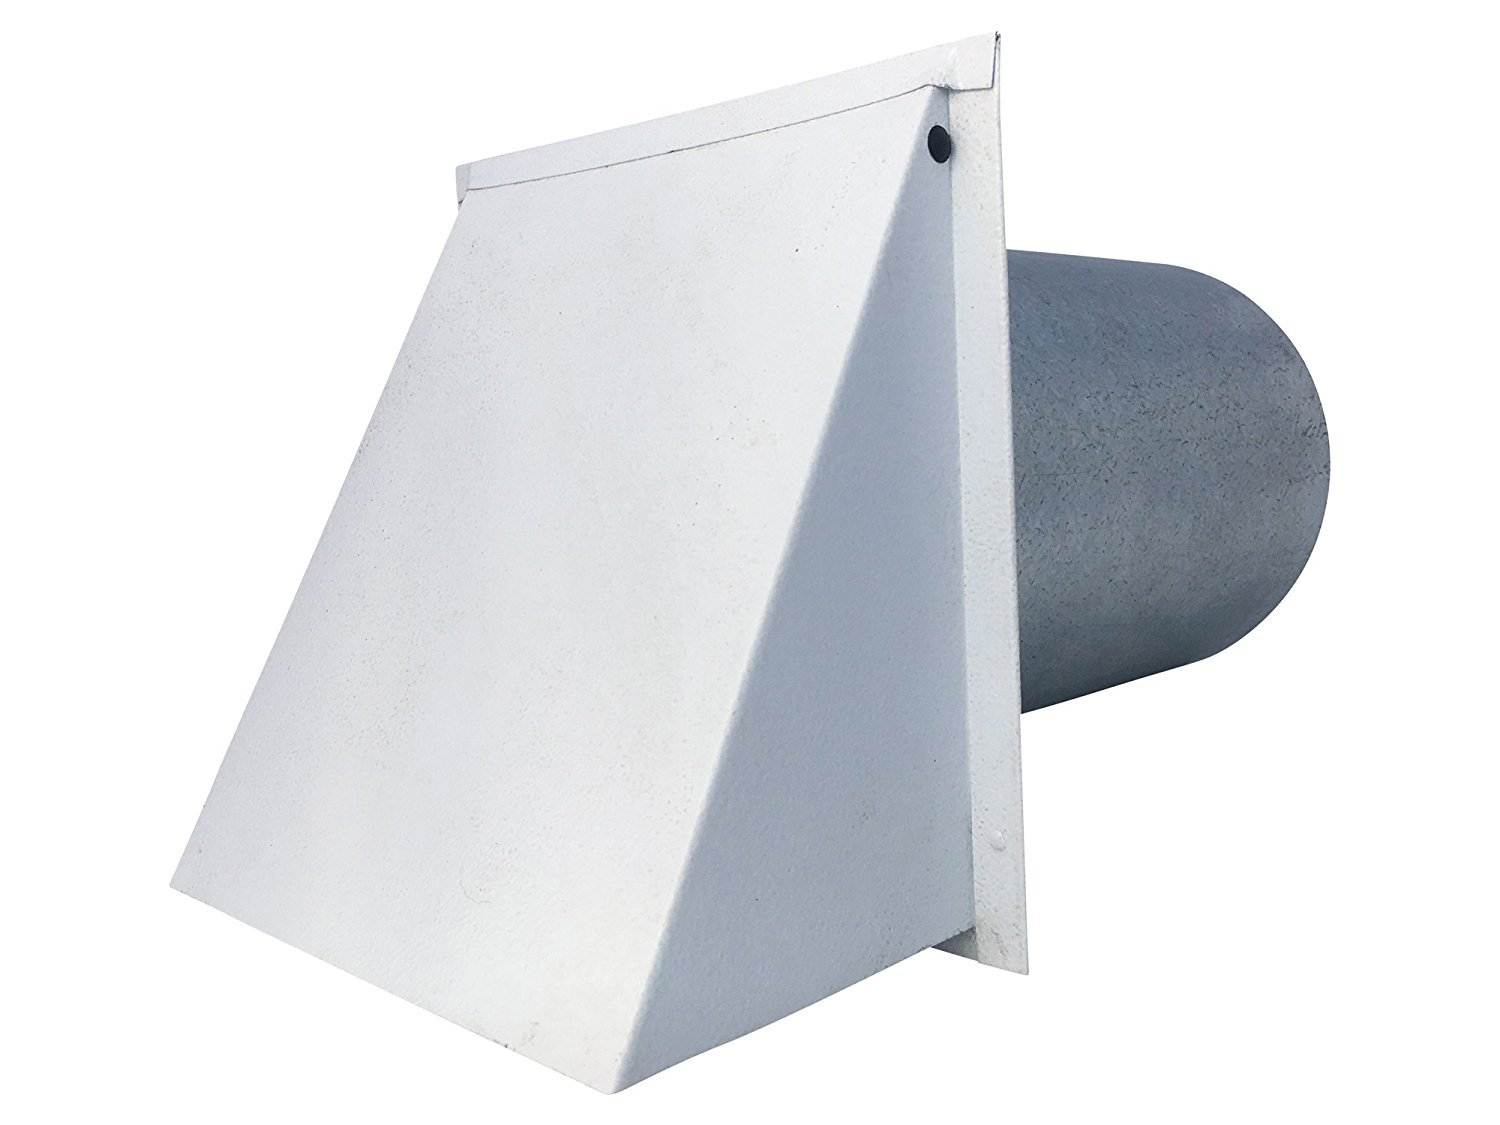 6 Inch Wall Vent Painted White Damper Only (6 Inch diameter) - Vent Works